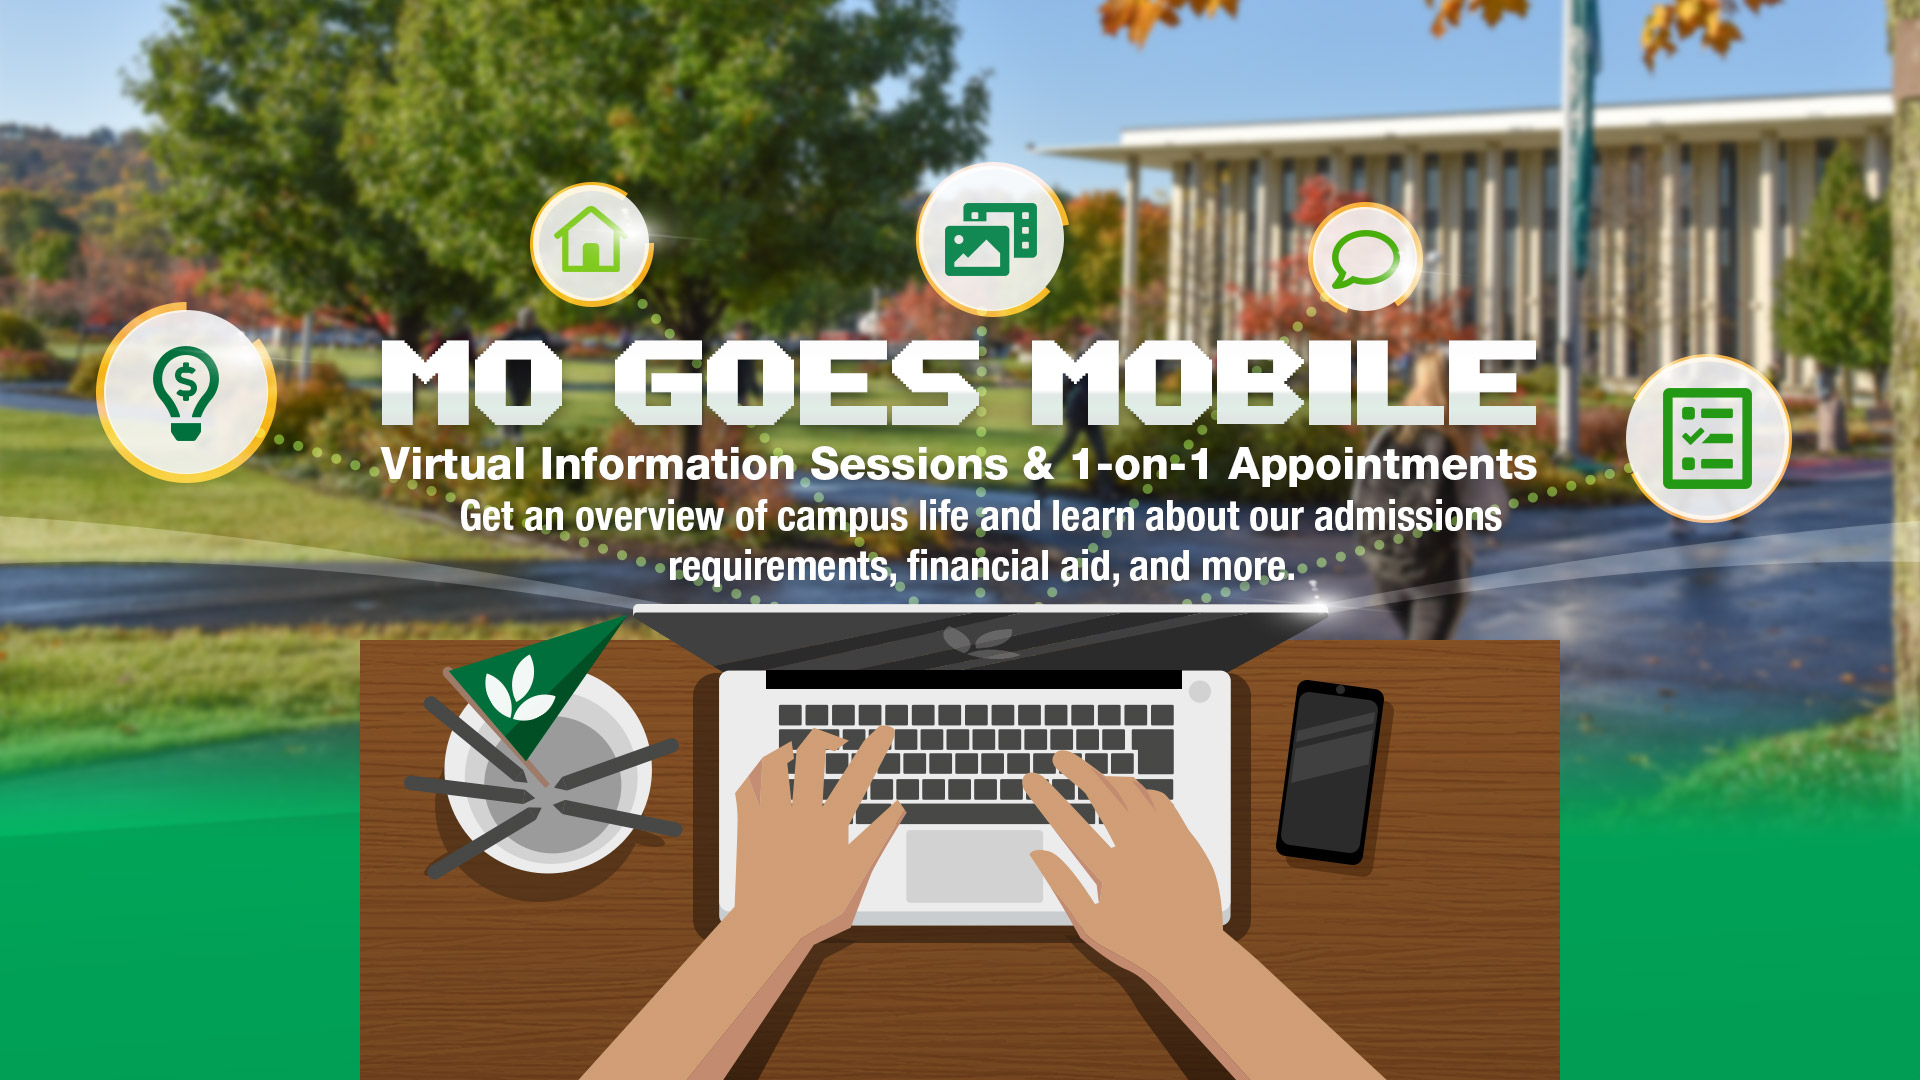 Mo Goes Mobile! Virtual Information Sessions and 1 on 1 appointments. Get an Overview of campus life, and learn about our admission requirements, financial aid, and more.